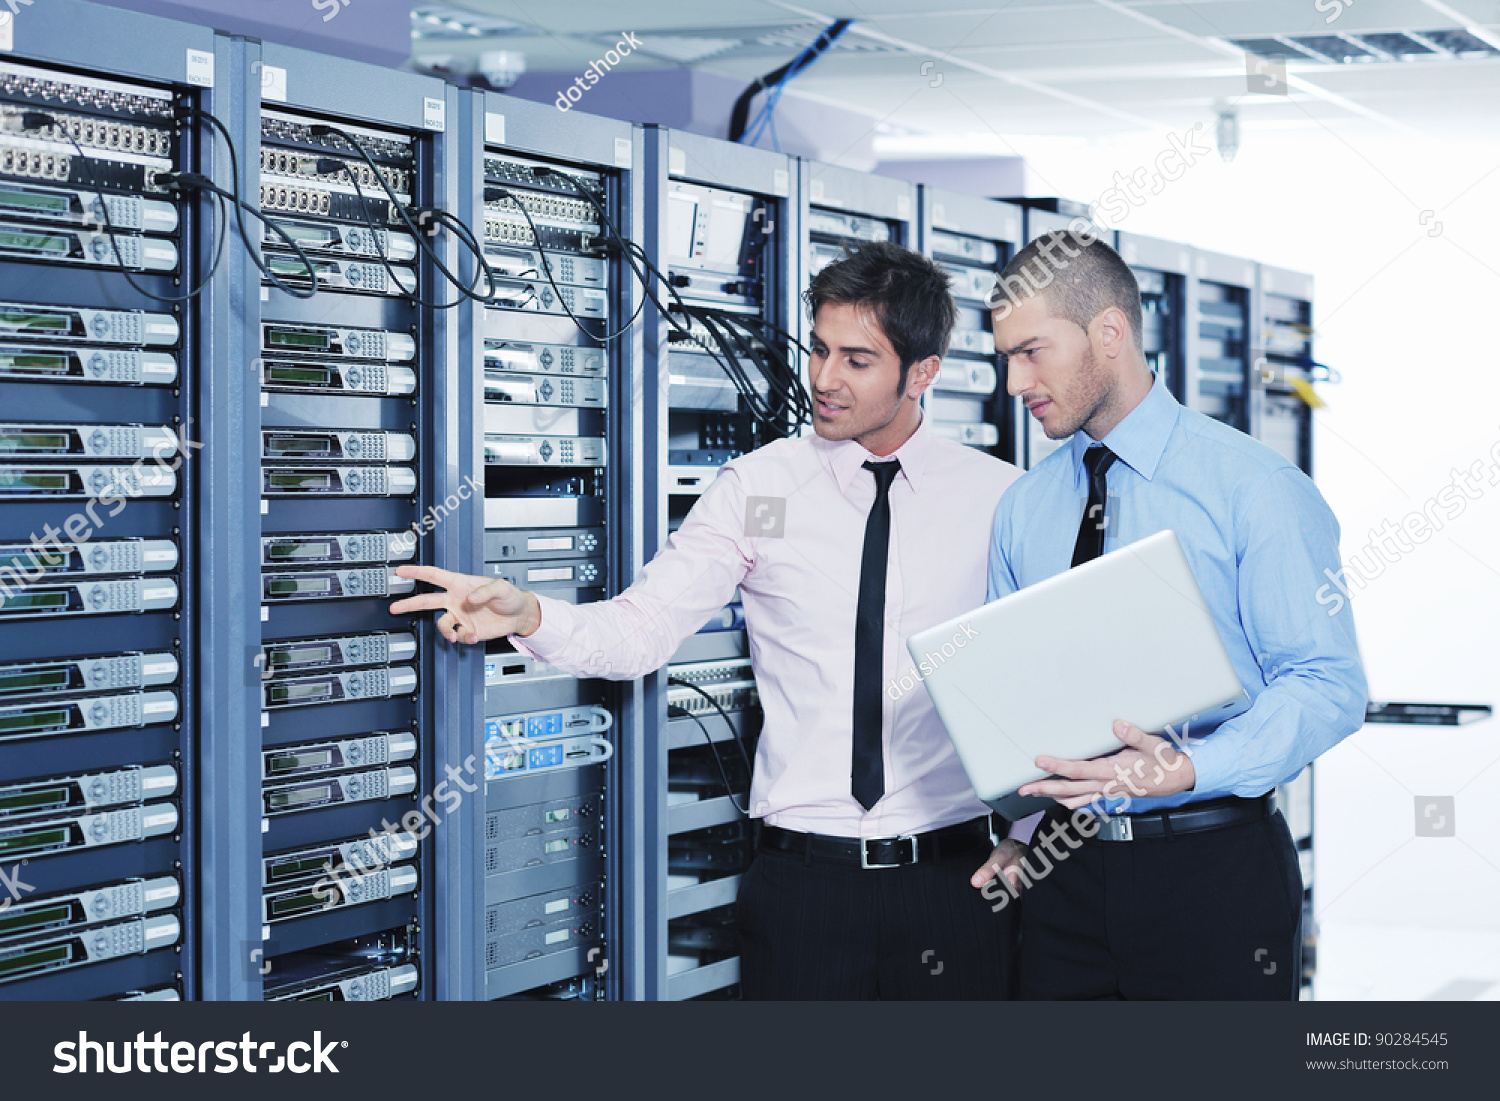 Group Young Business People Engineer Network Stock Photo. Strengths To Be Mentioned In Resume. Sample Resume Business Owner. New Graduate Resume Sample. Junior Java Developer Resume Examples. Post Resumes Online For Free. Seek Resume Builder. Executive Summary Examples For Resume. Criminal Defense Attorney Resume Sample